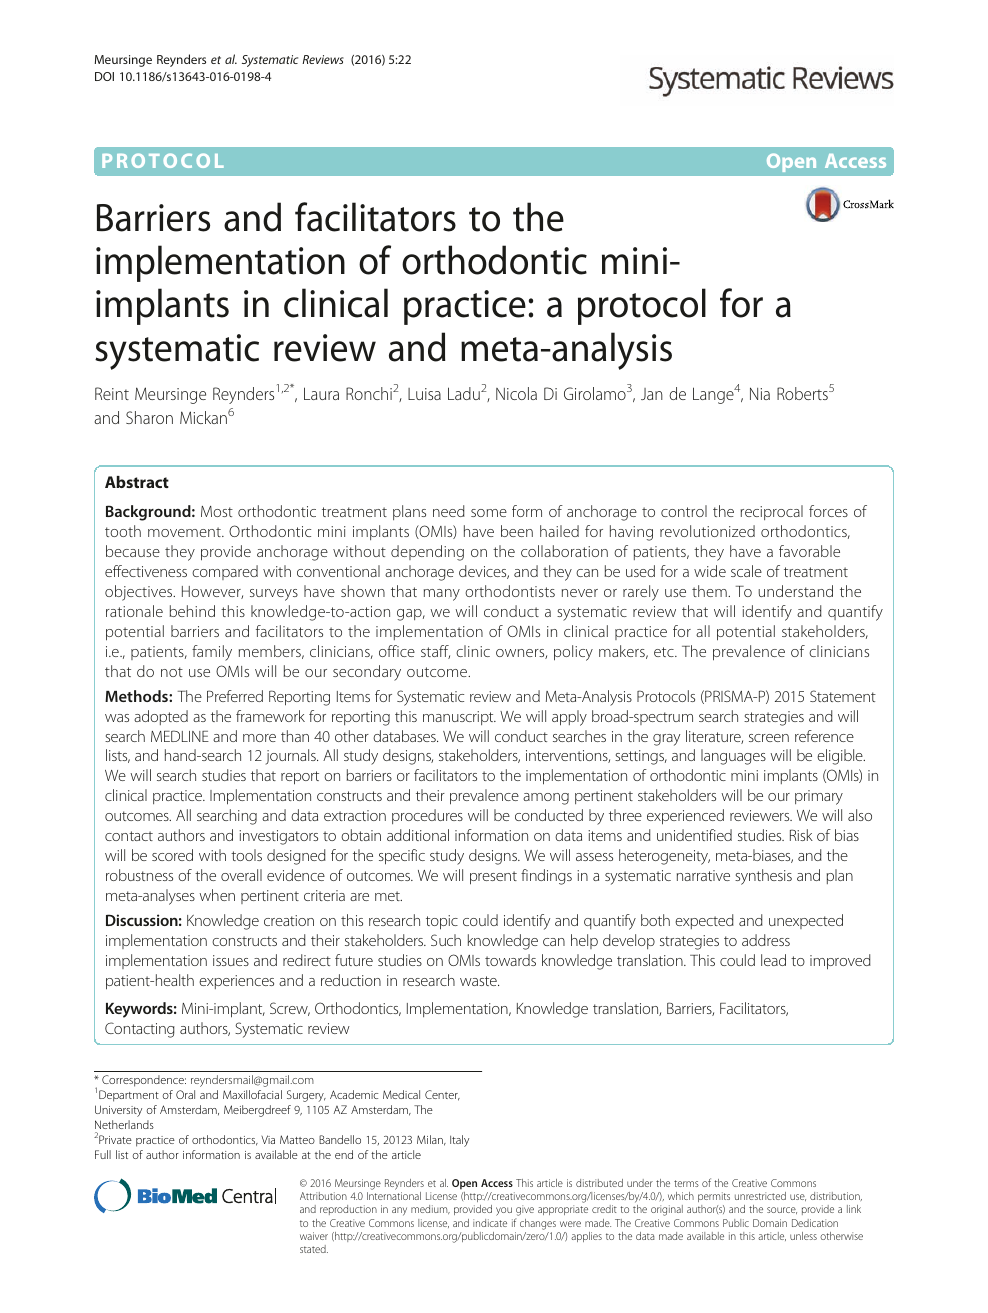 Barriers and facilitators to the implementation of